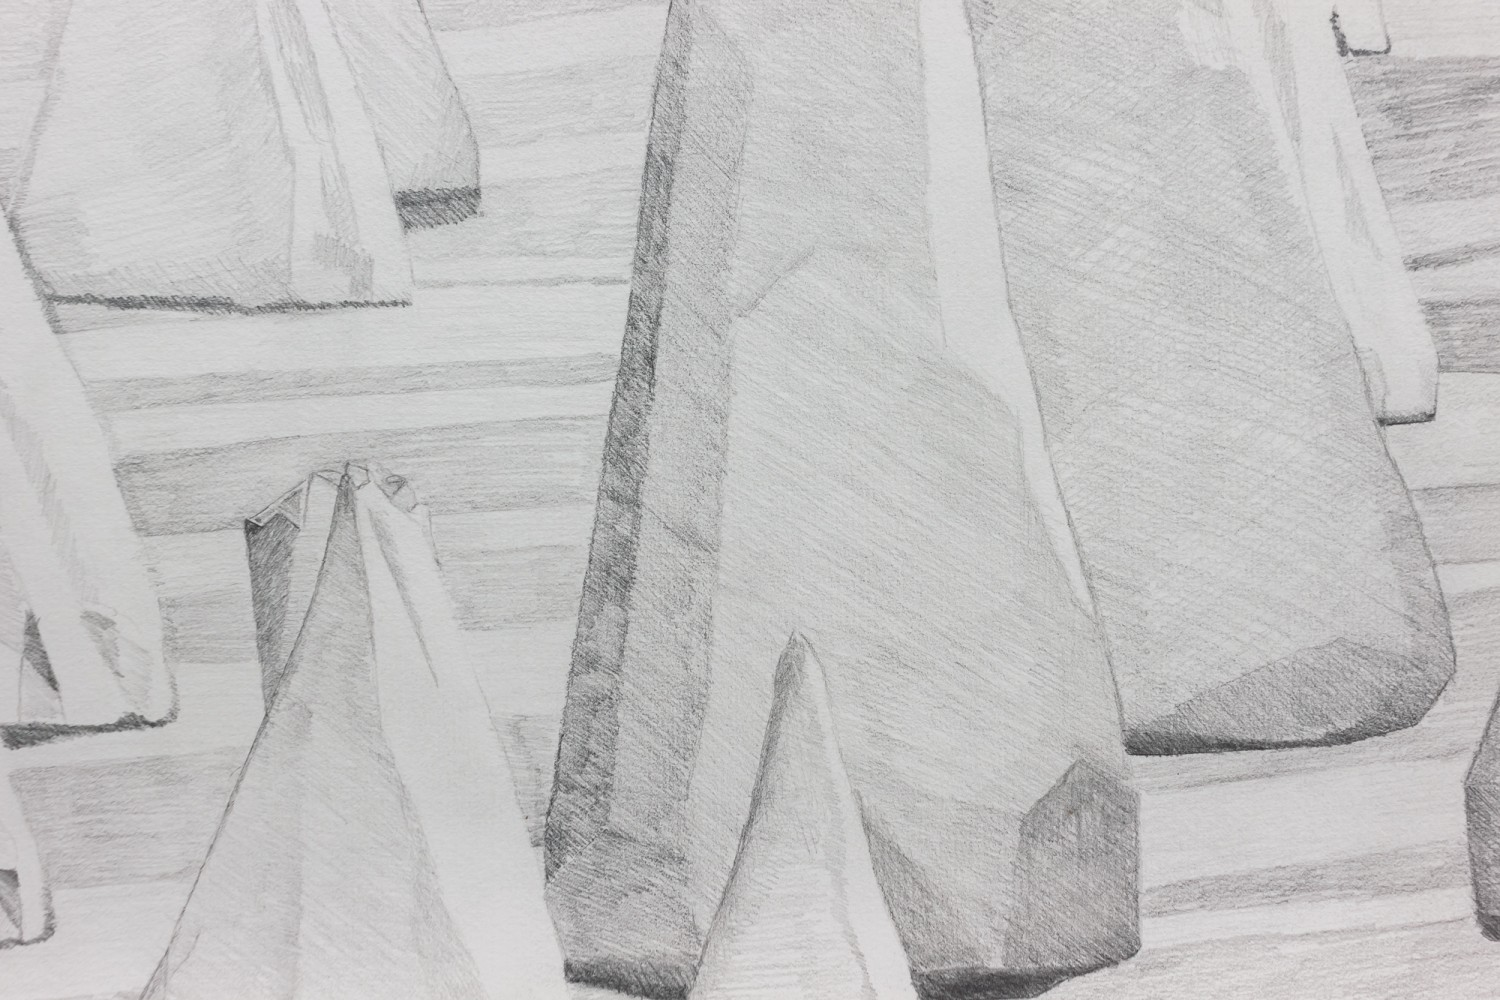 Breathing scape - graphite on paper, detail